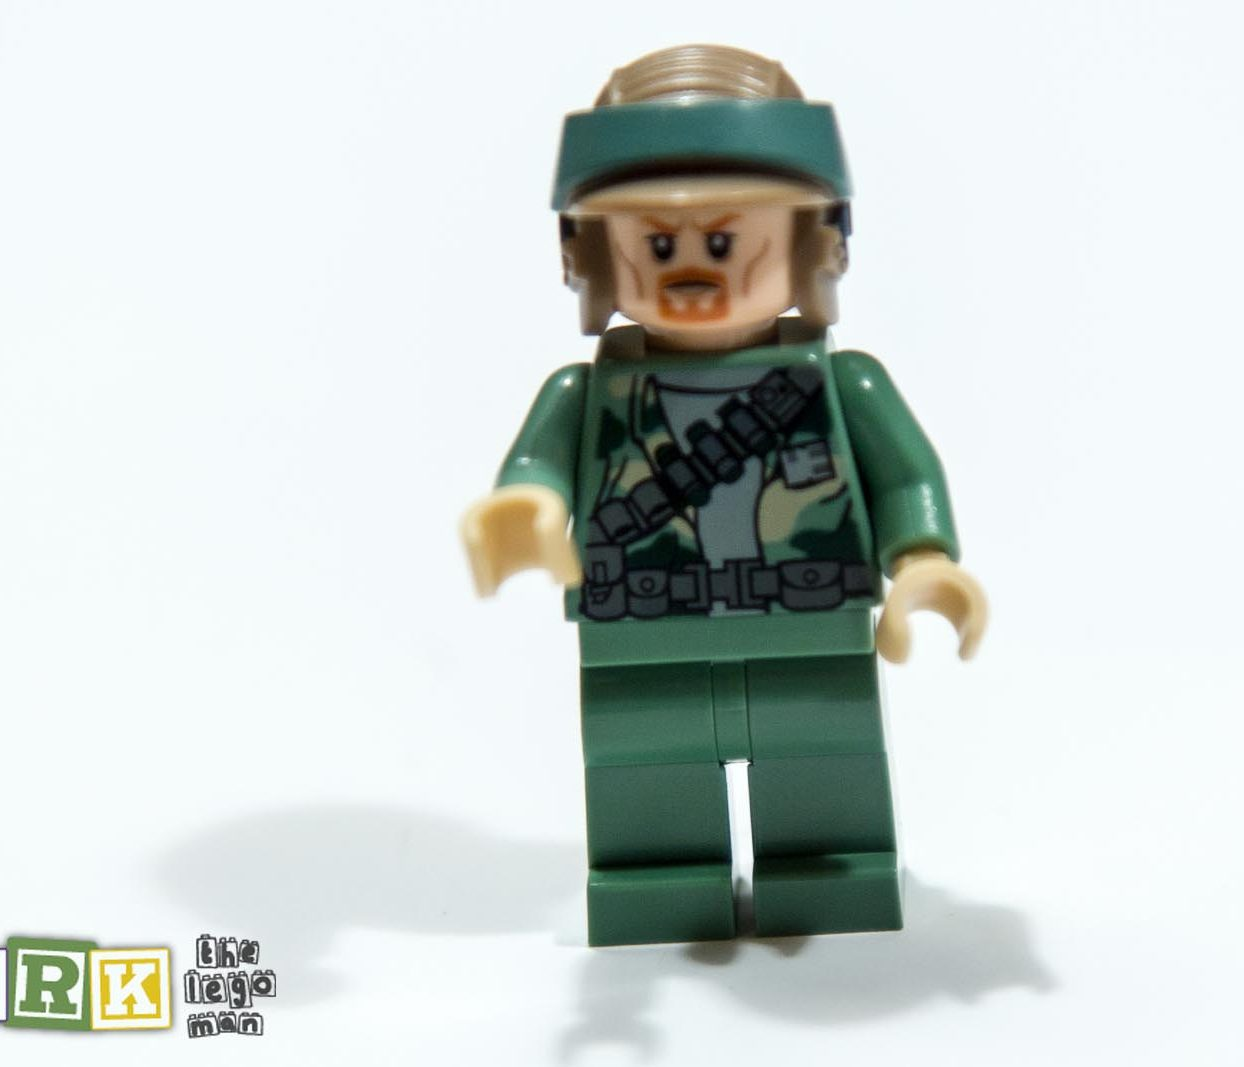 NEW Lego Star Wars minifig Endor Rebet Trooper